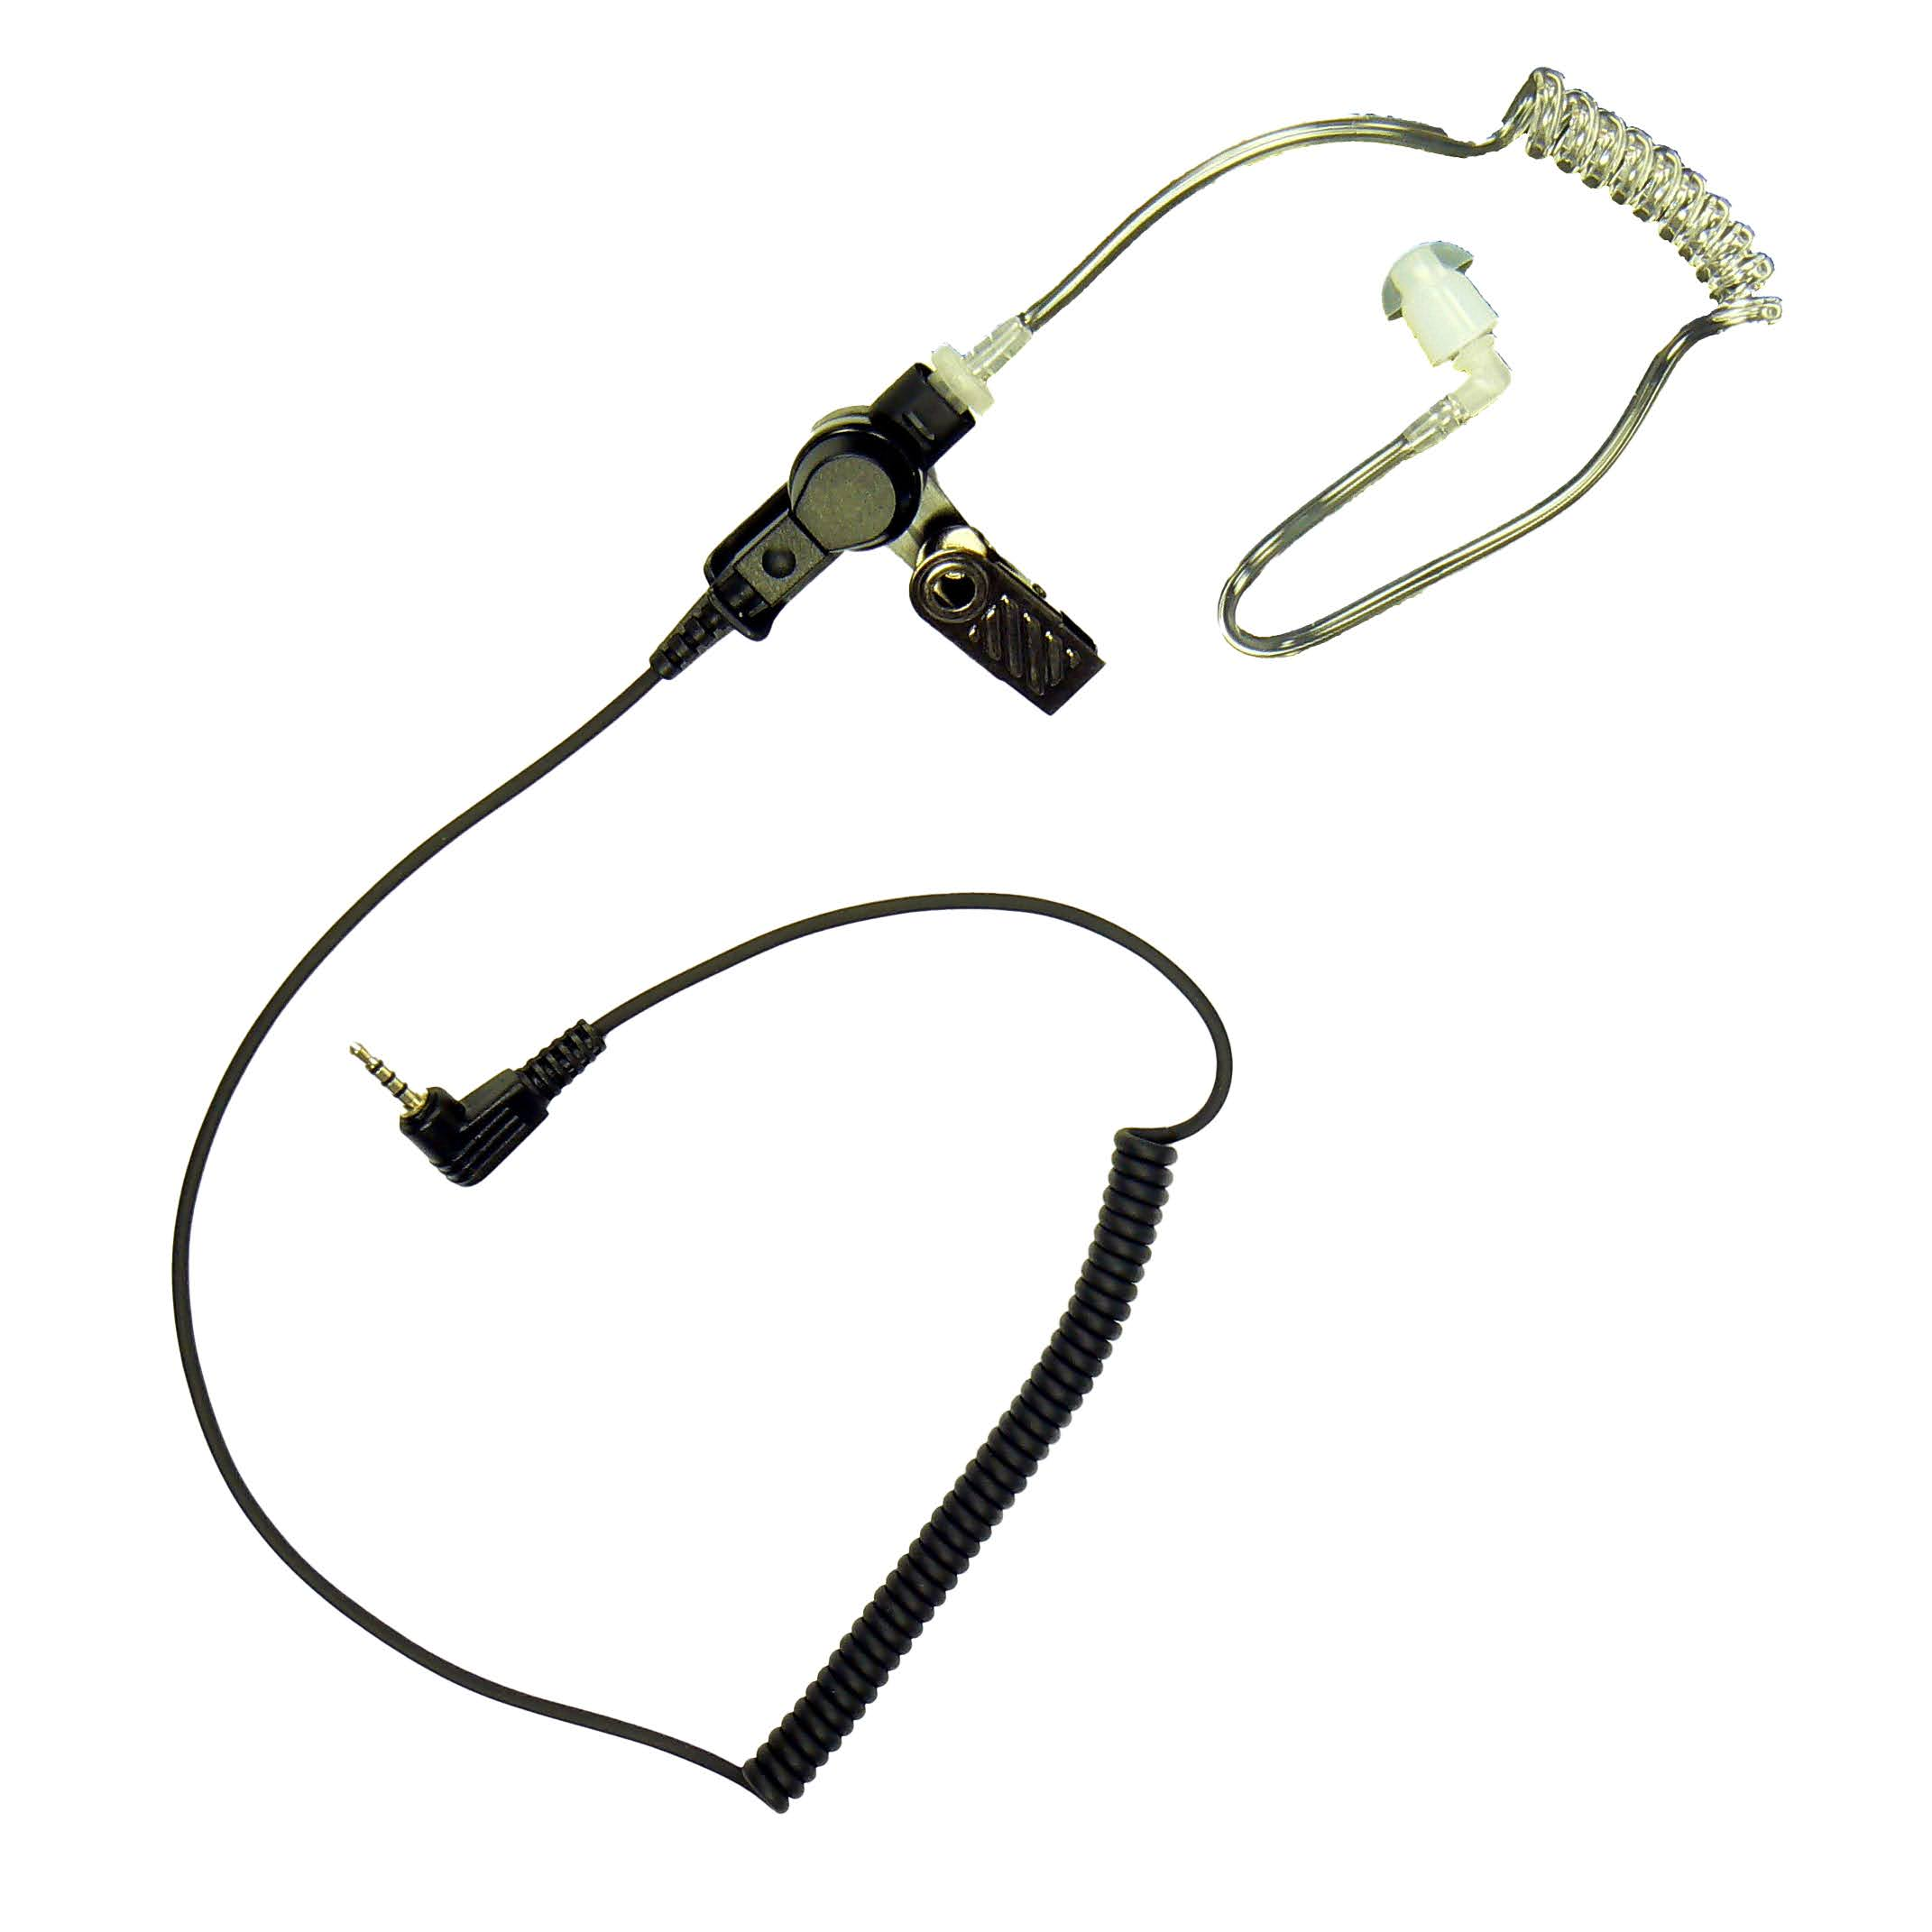 Listen only earpiece acoustic tube for Sepura Tetra Radio